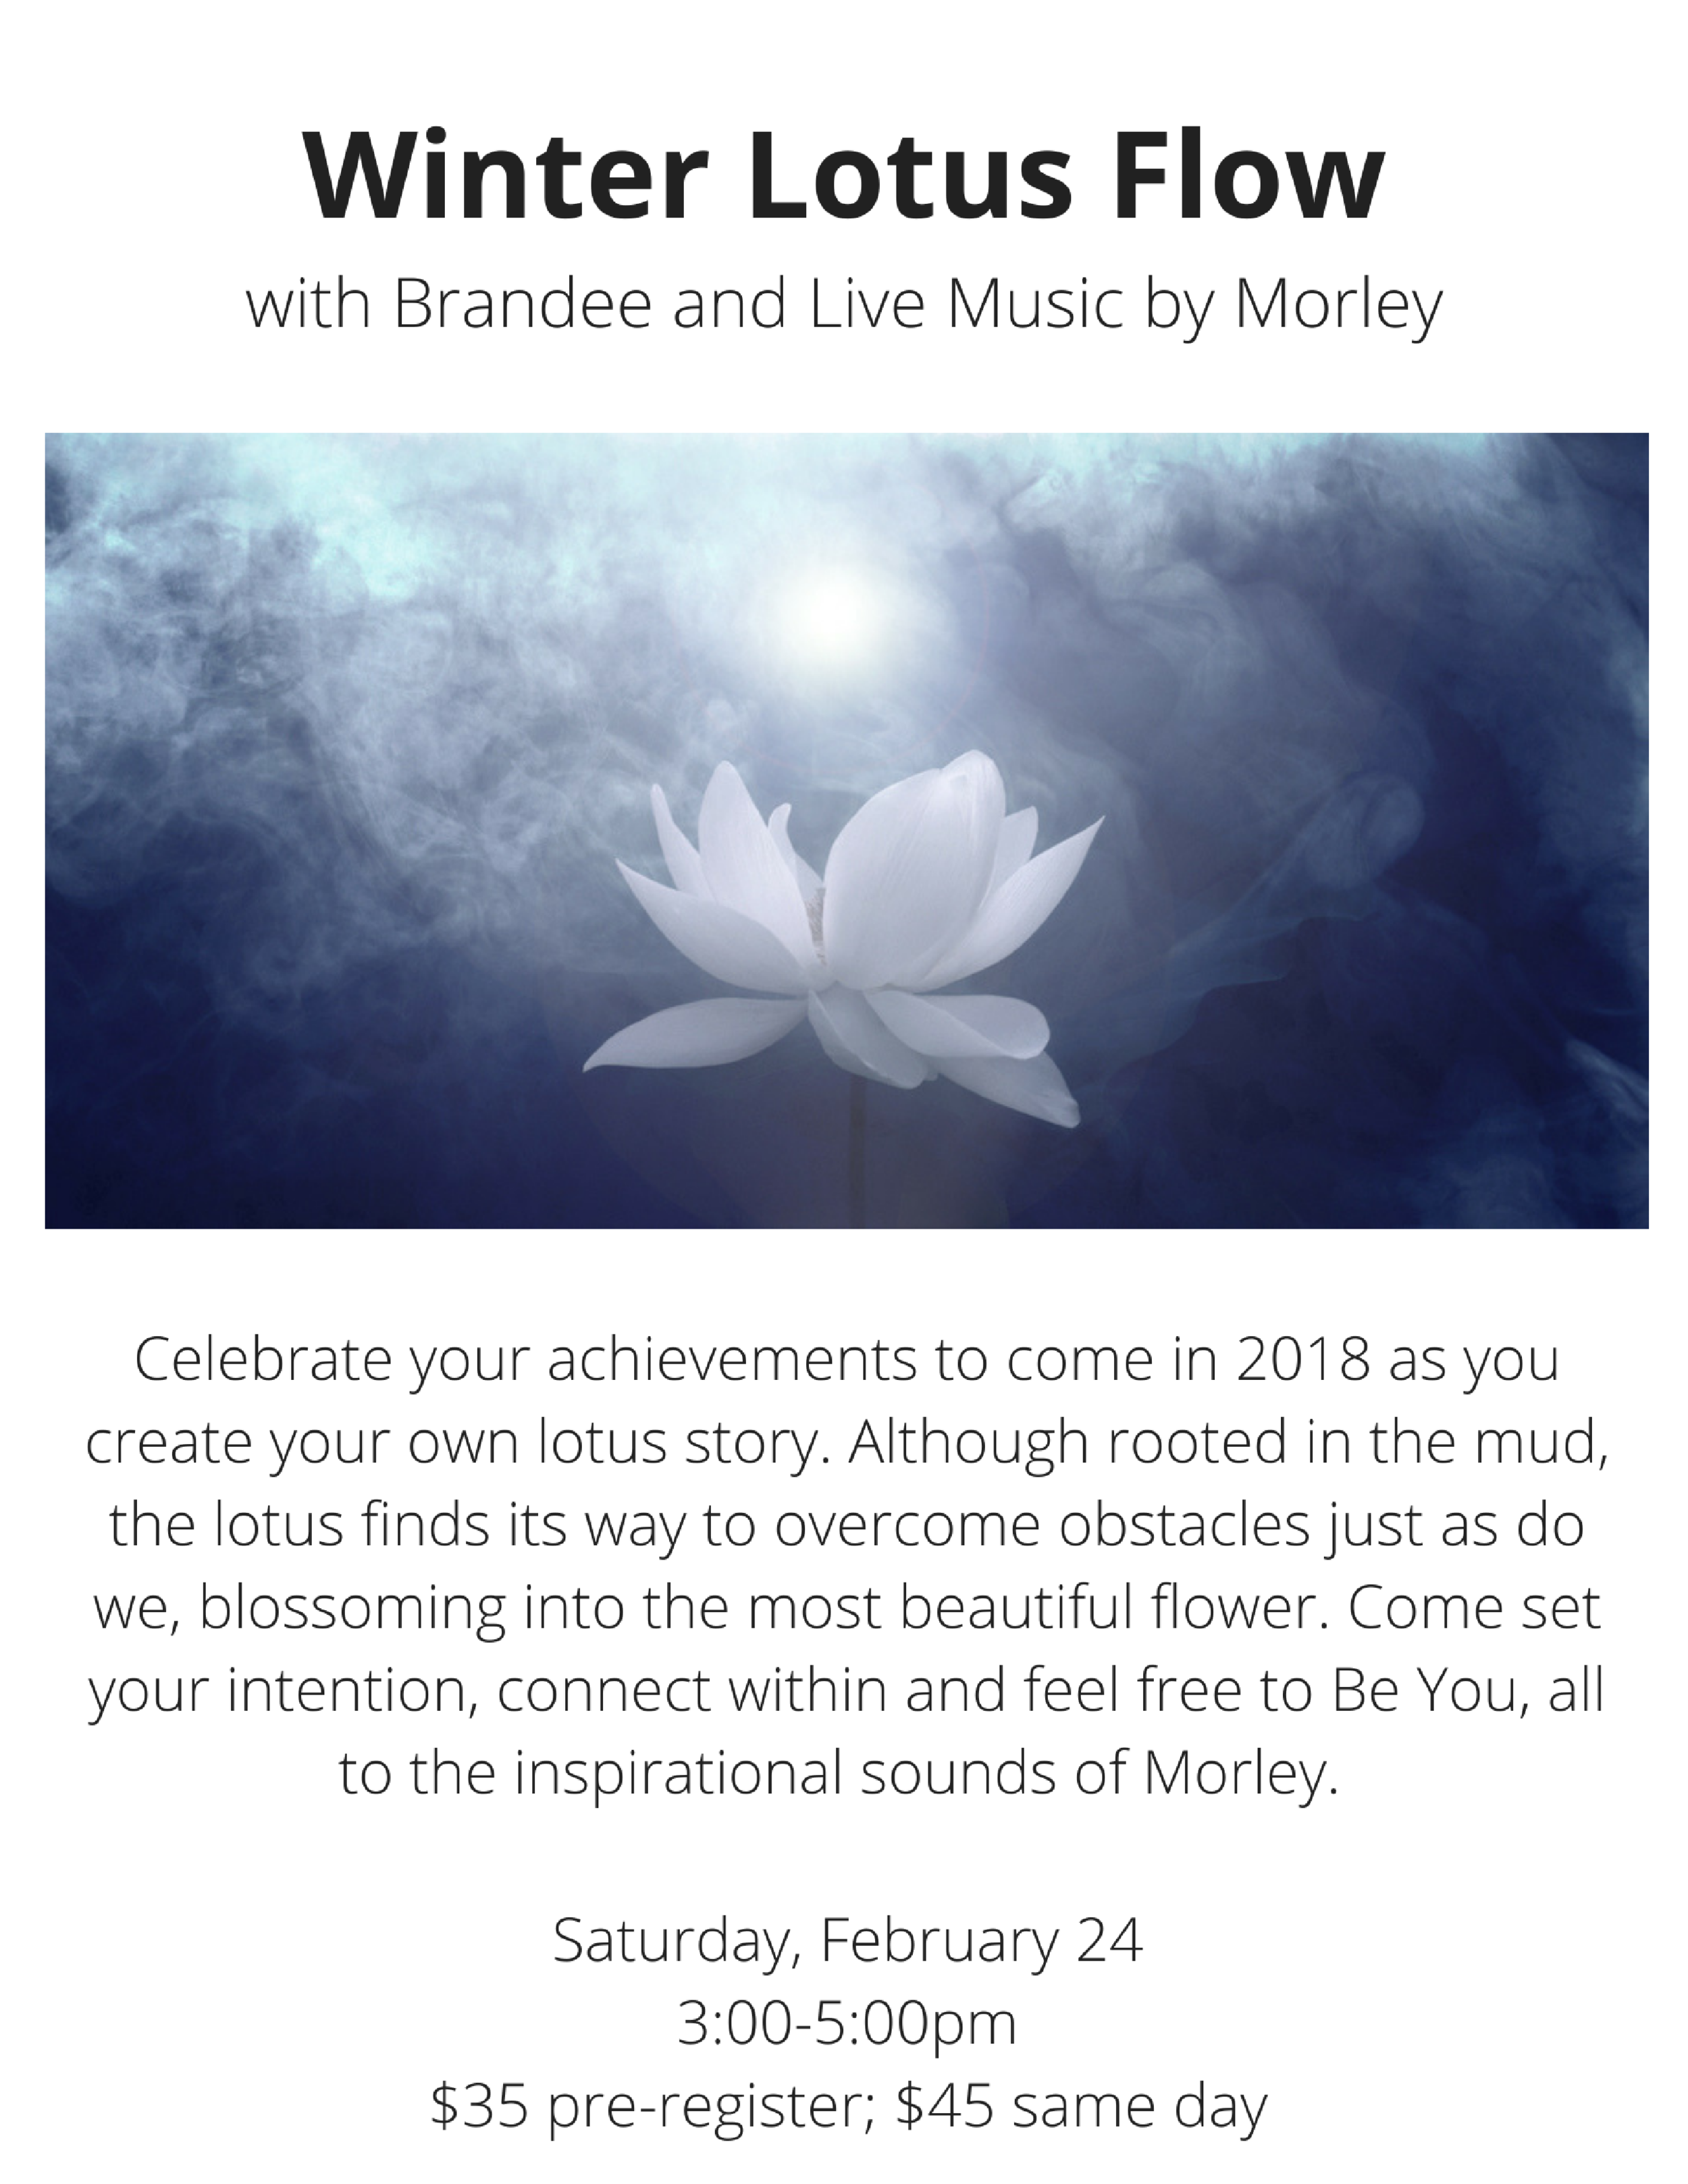 Winter Lotus Flow with Brandee and Live Music by Morley (1).png